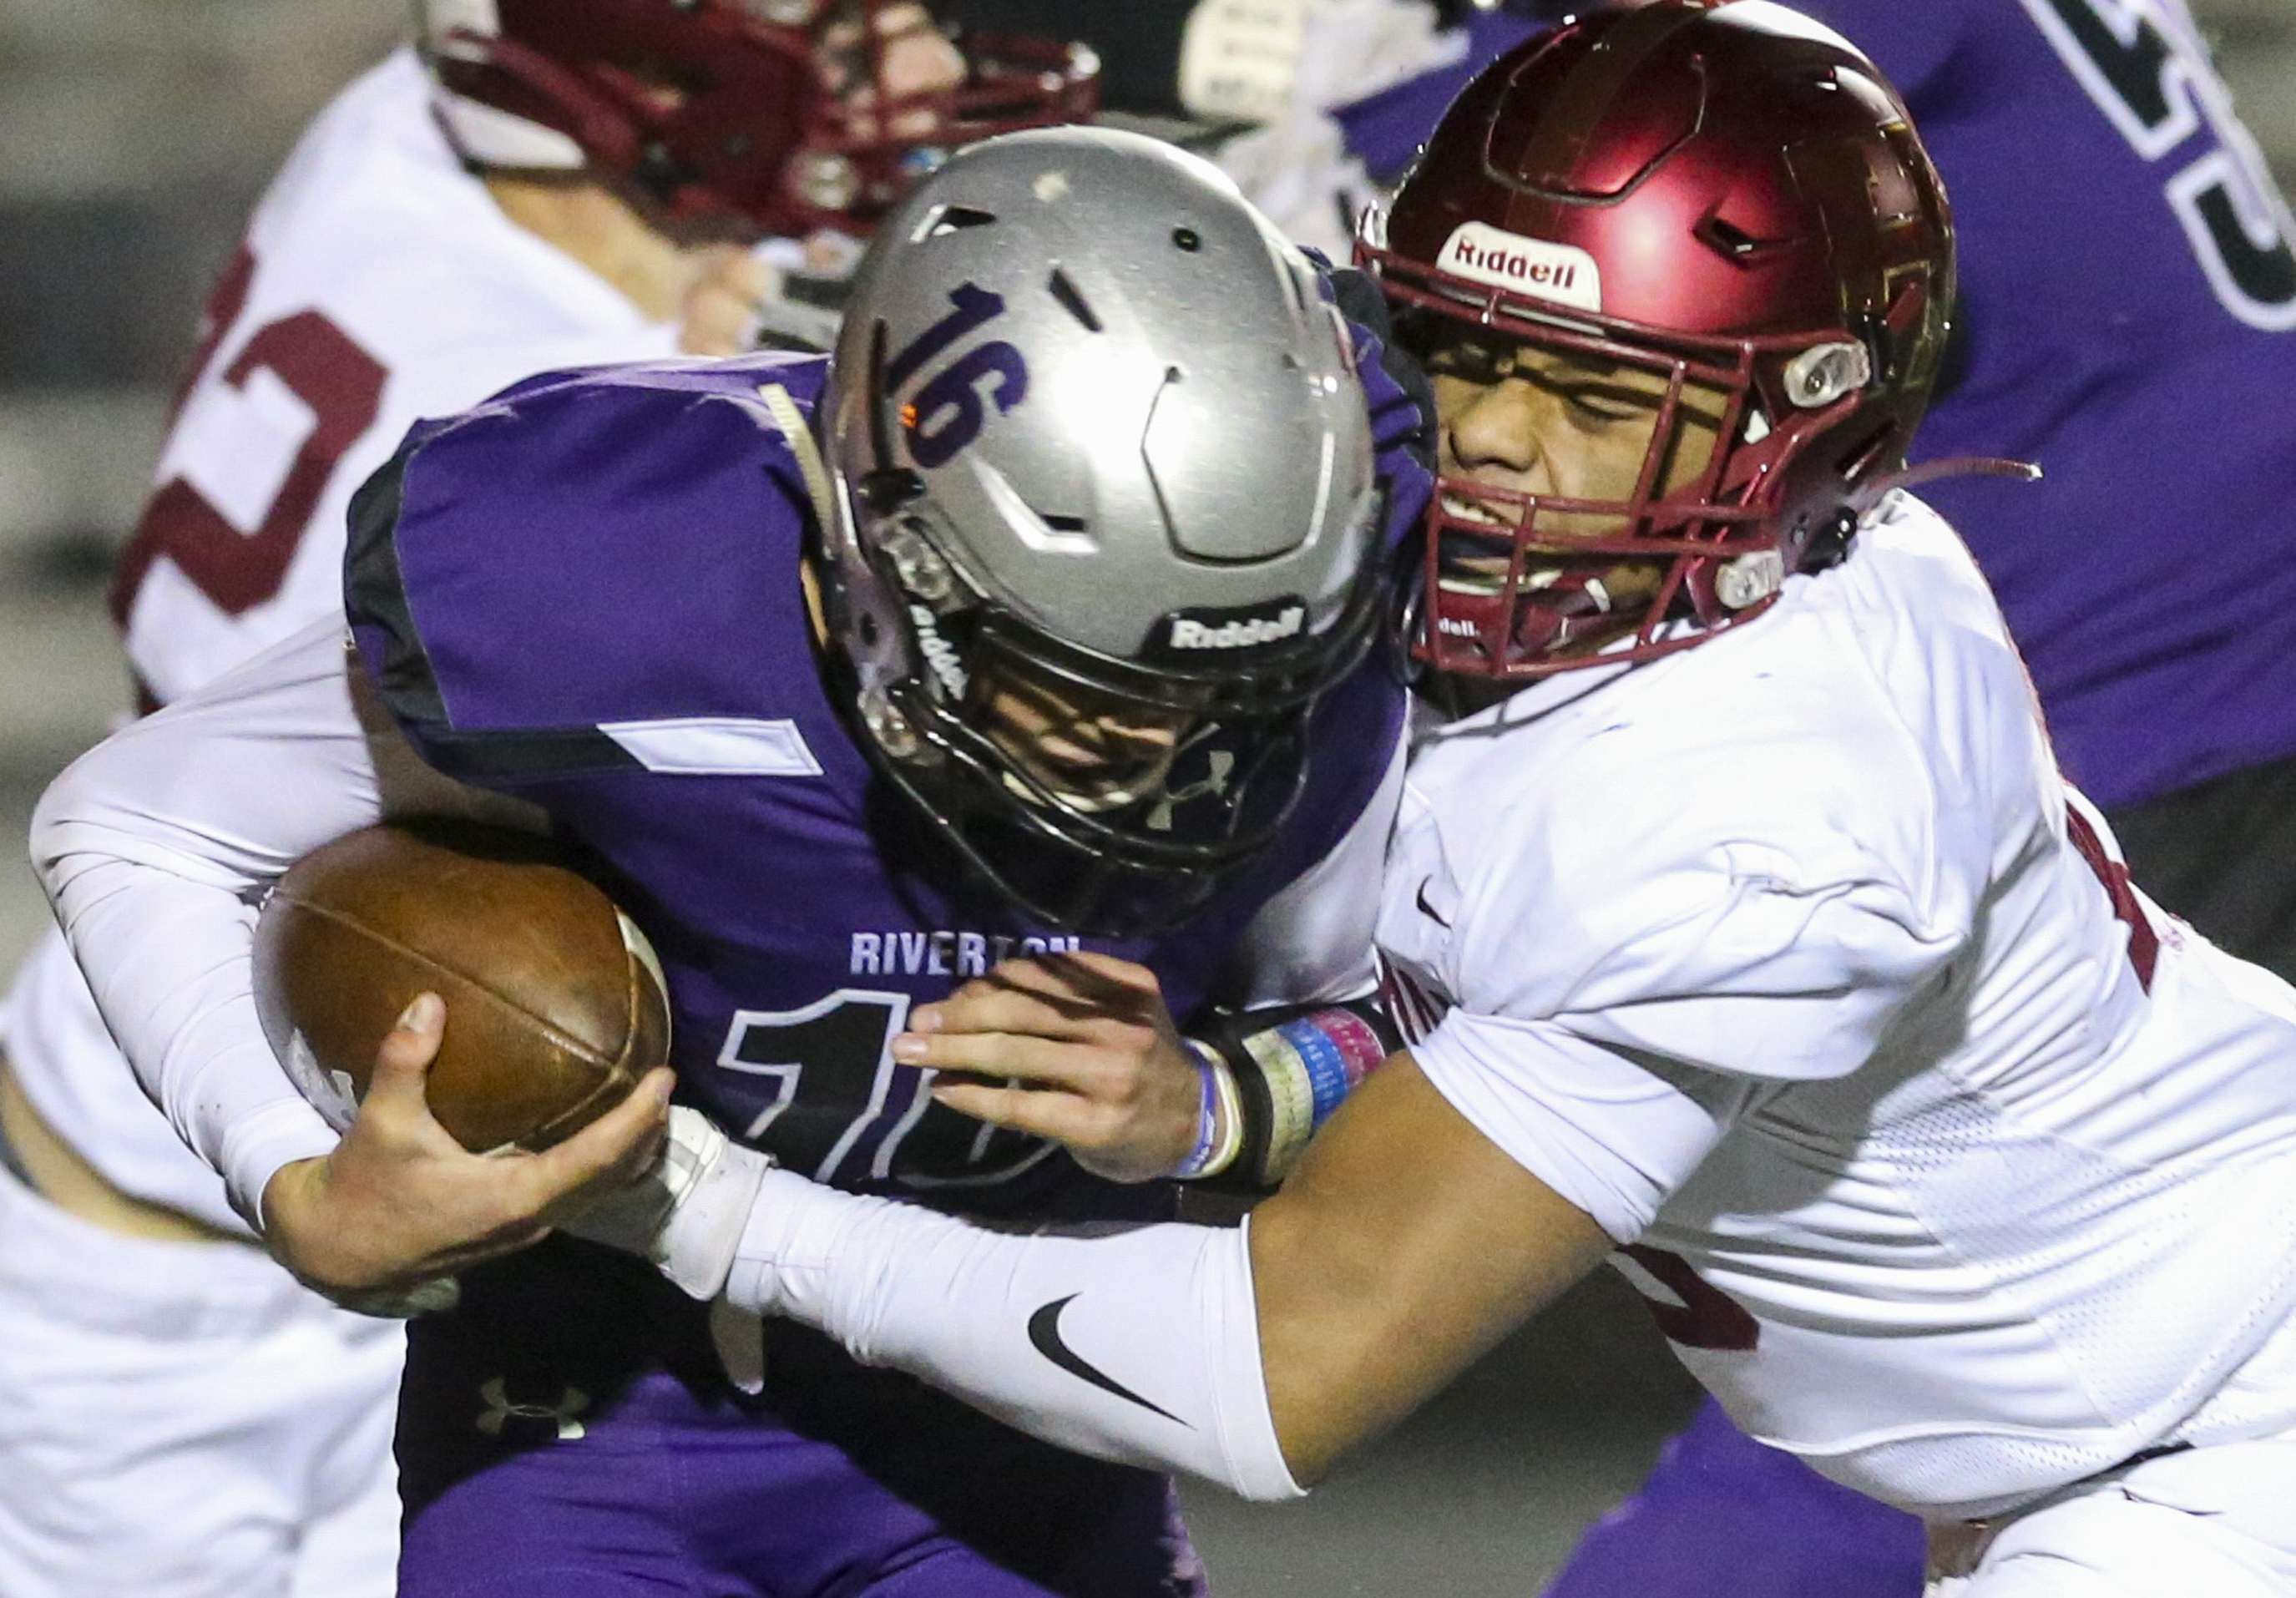 Riverton quarterback Jaxson Howard (16) is sacked on third down by Herriman lineman Ngana Leakehe (23) during the first half of a high school football game at Riverton High School in Riverton on Thursday, Oct. 17, 2019.